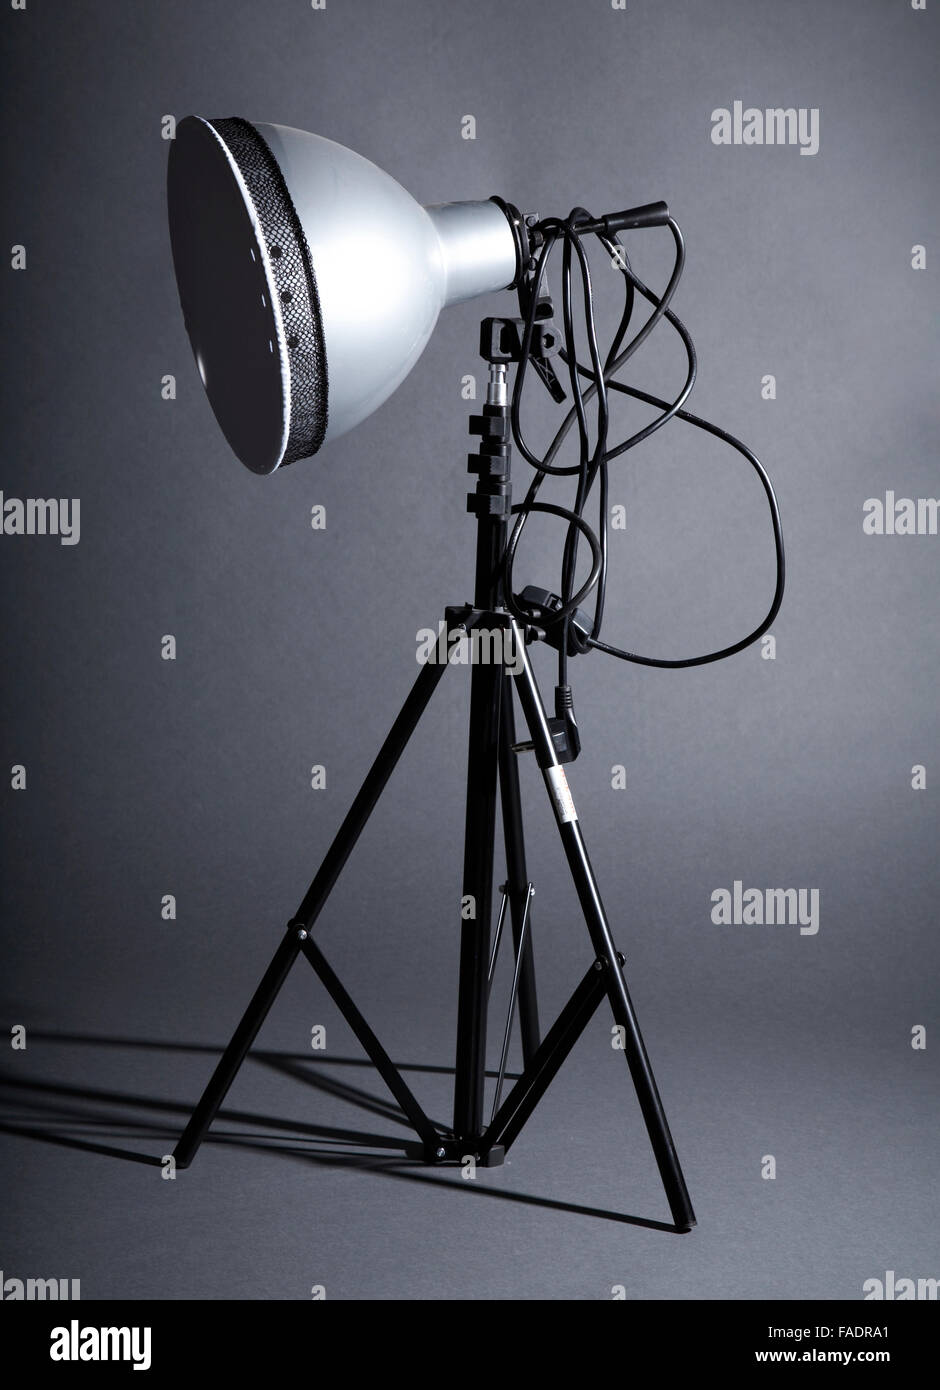 Photographic reflector on a grey background - Stock Image